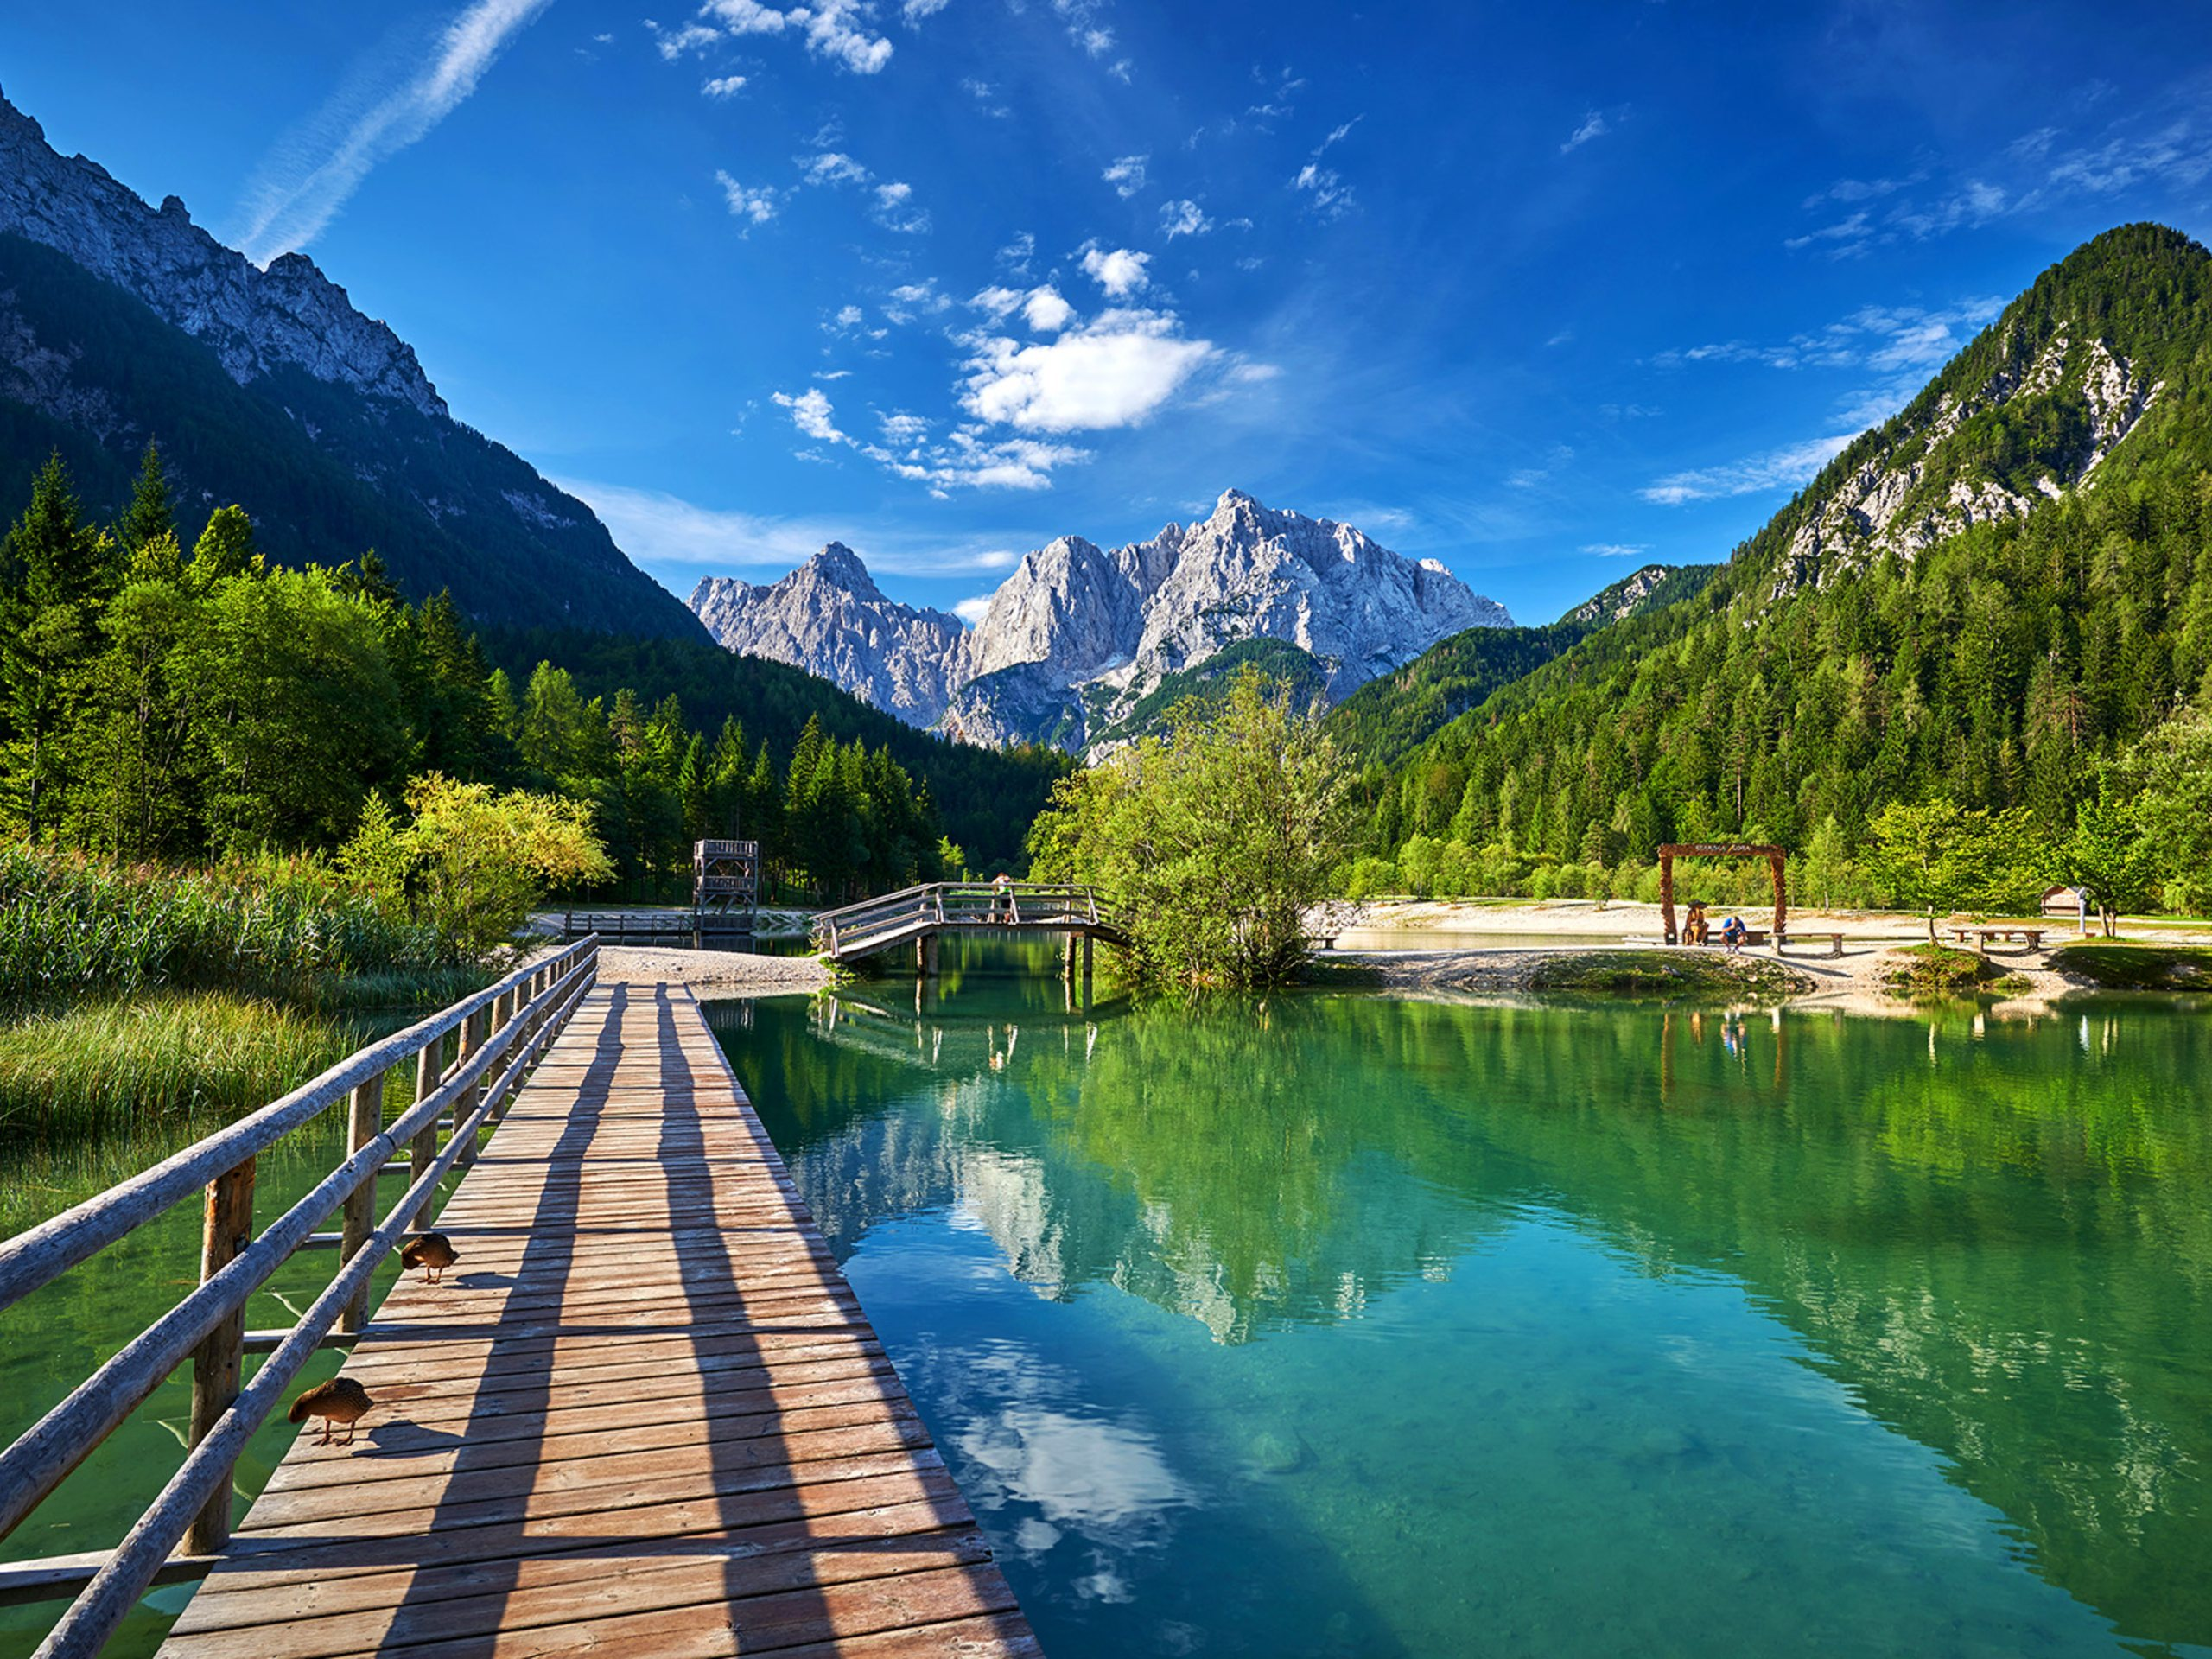 Stunning mountain views above the turquoise lake in Slovenia